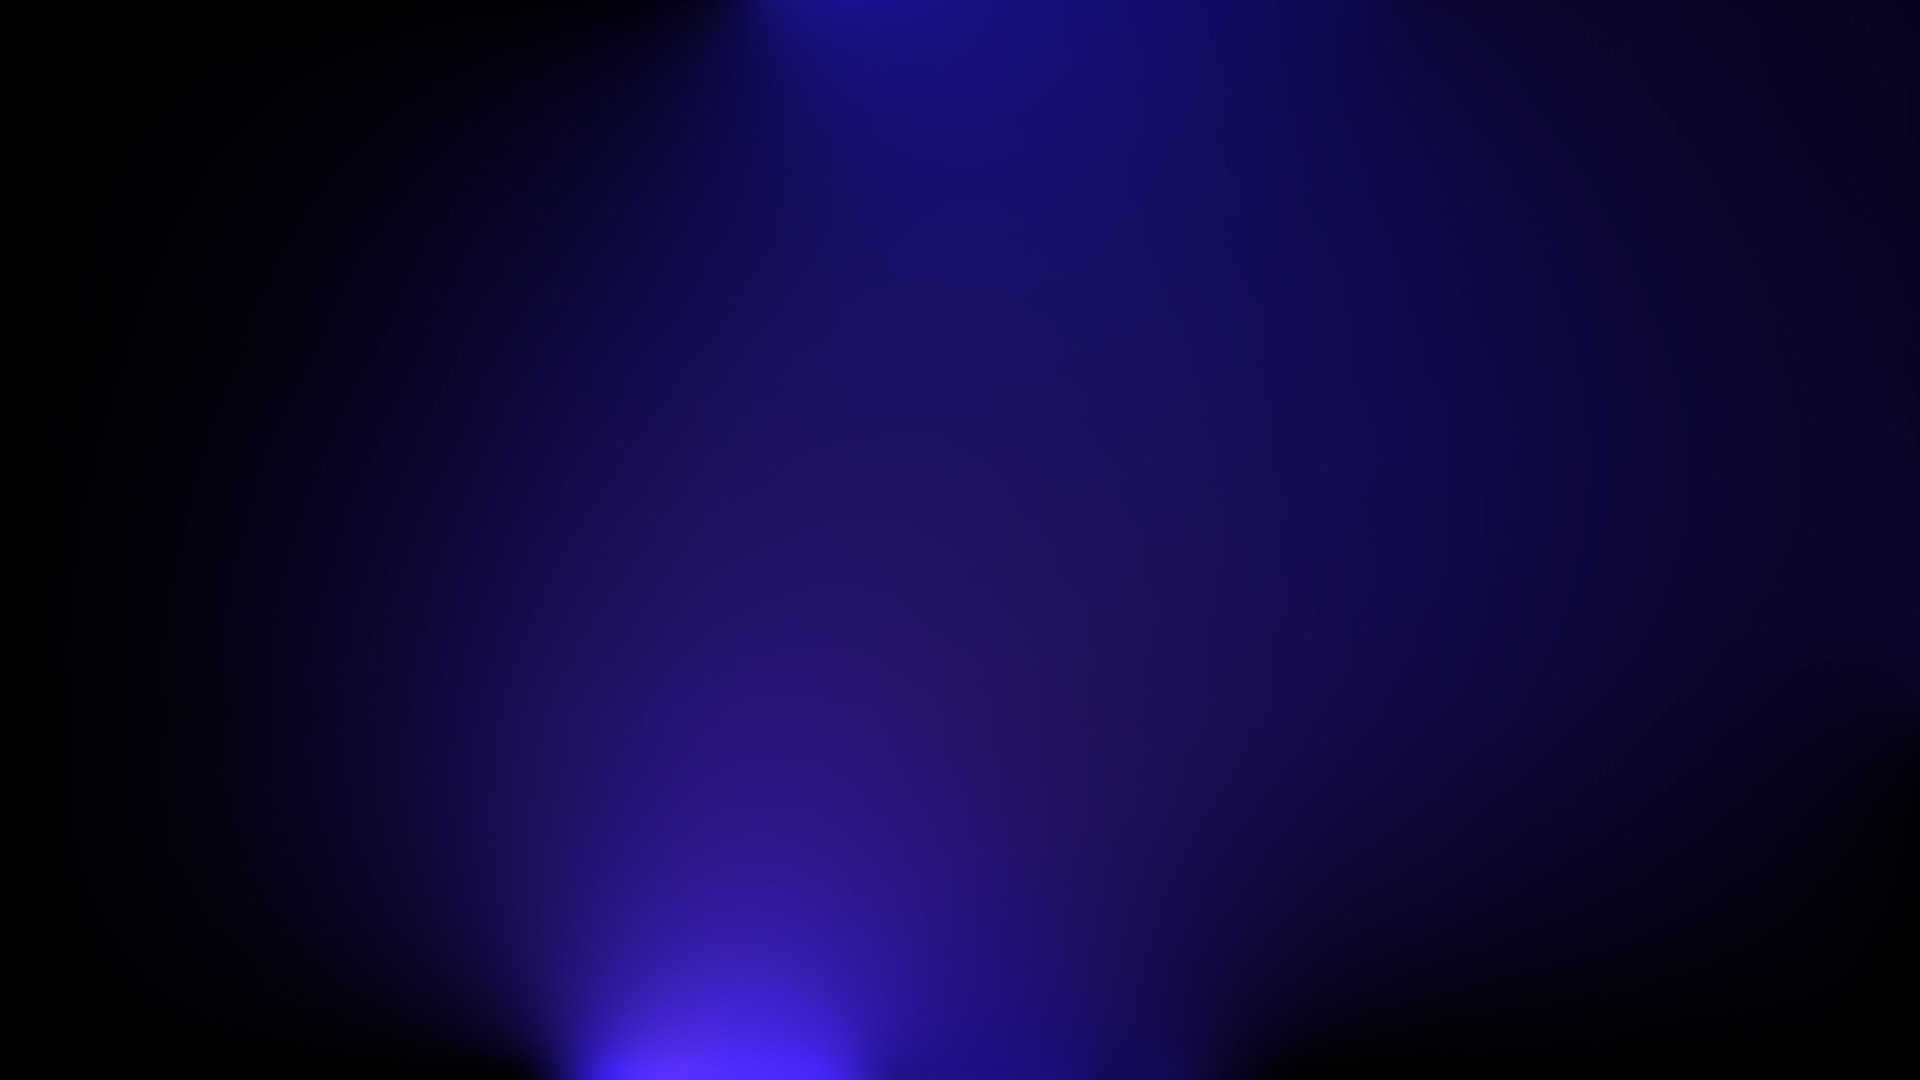 Blue Color Wallpapers For Mobile Cool Dark Blue Wallpapers